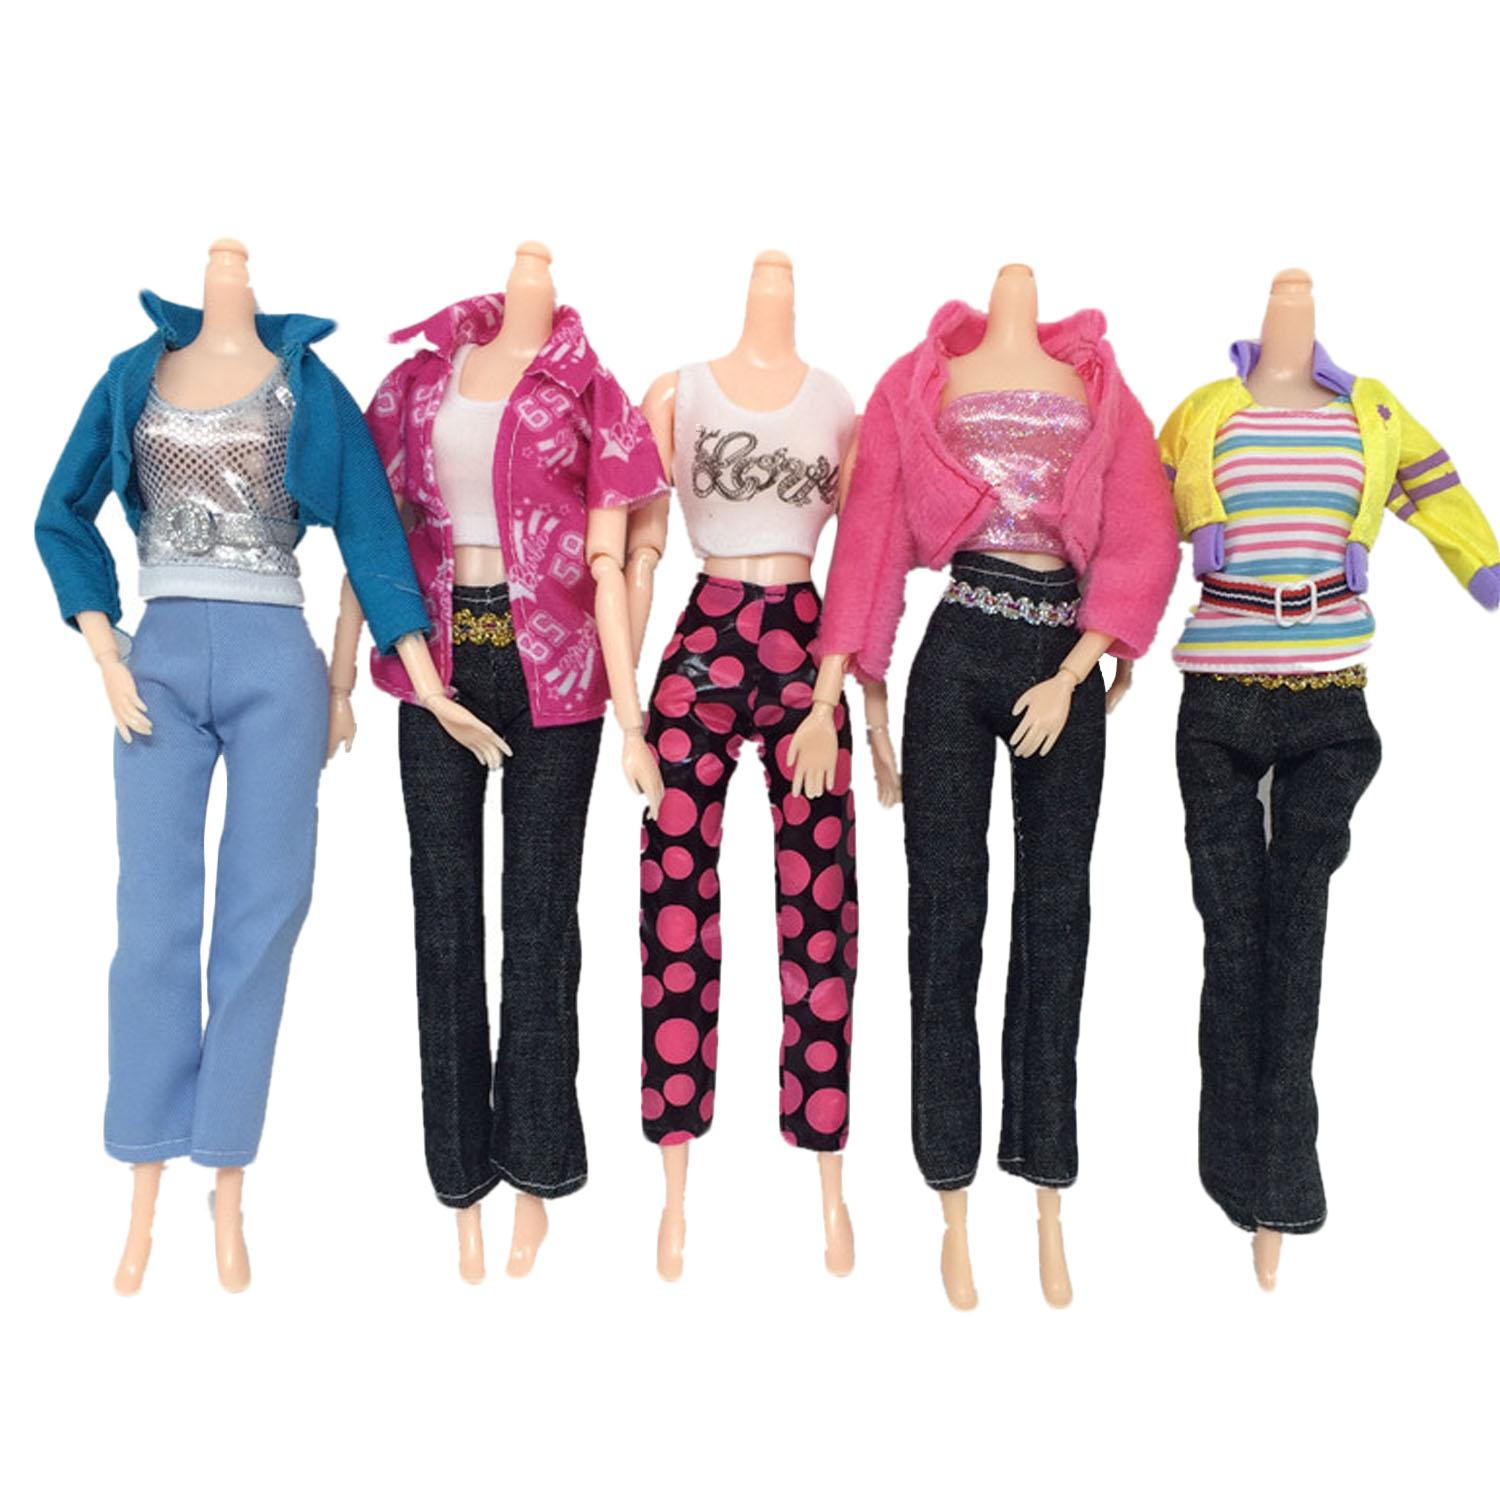 1c326086d 5 Set Fashion Girl Doll Toys Casual Wear Clothes Outfits Tops And Pants  Accessories for Barbie